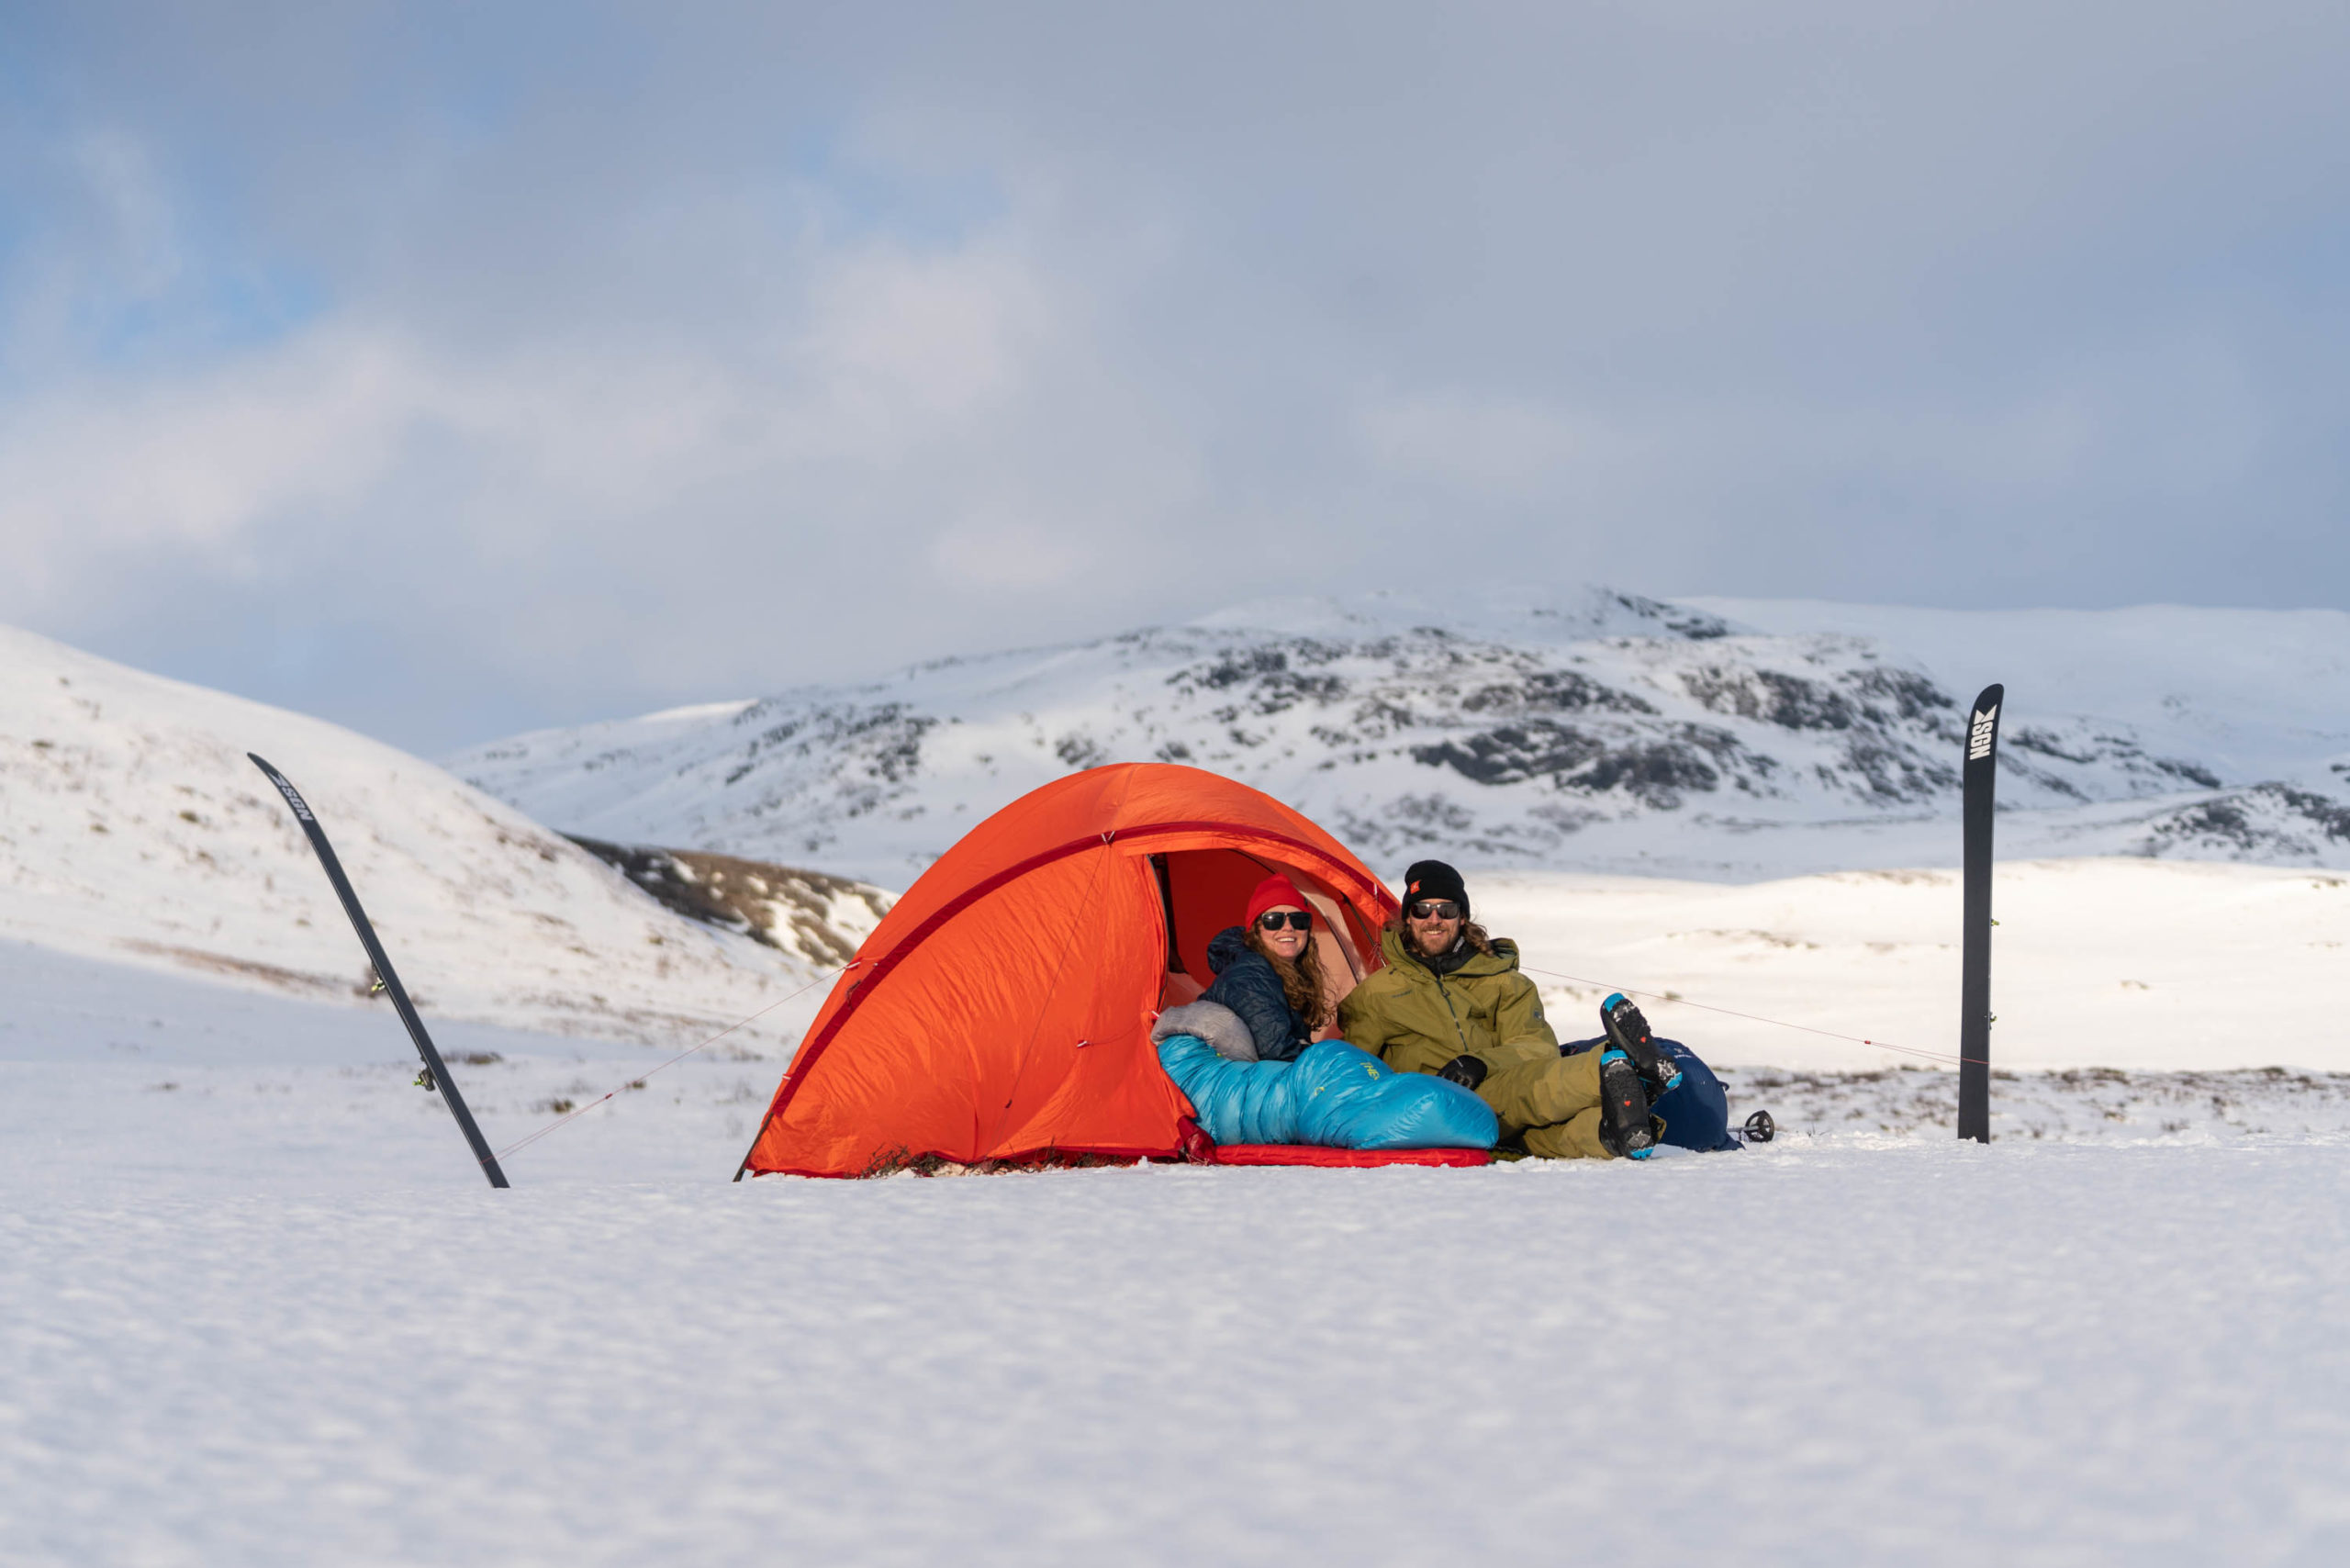 If you want to have a good time and feel rested for the next day, staying warm at night is a critical component of winter camping.